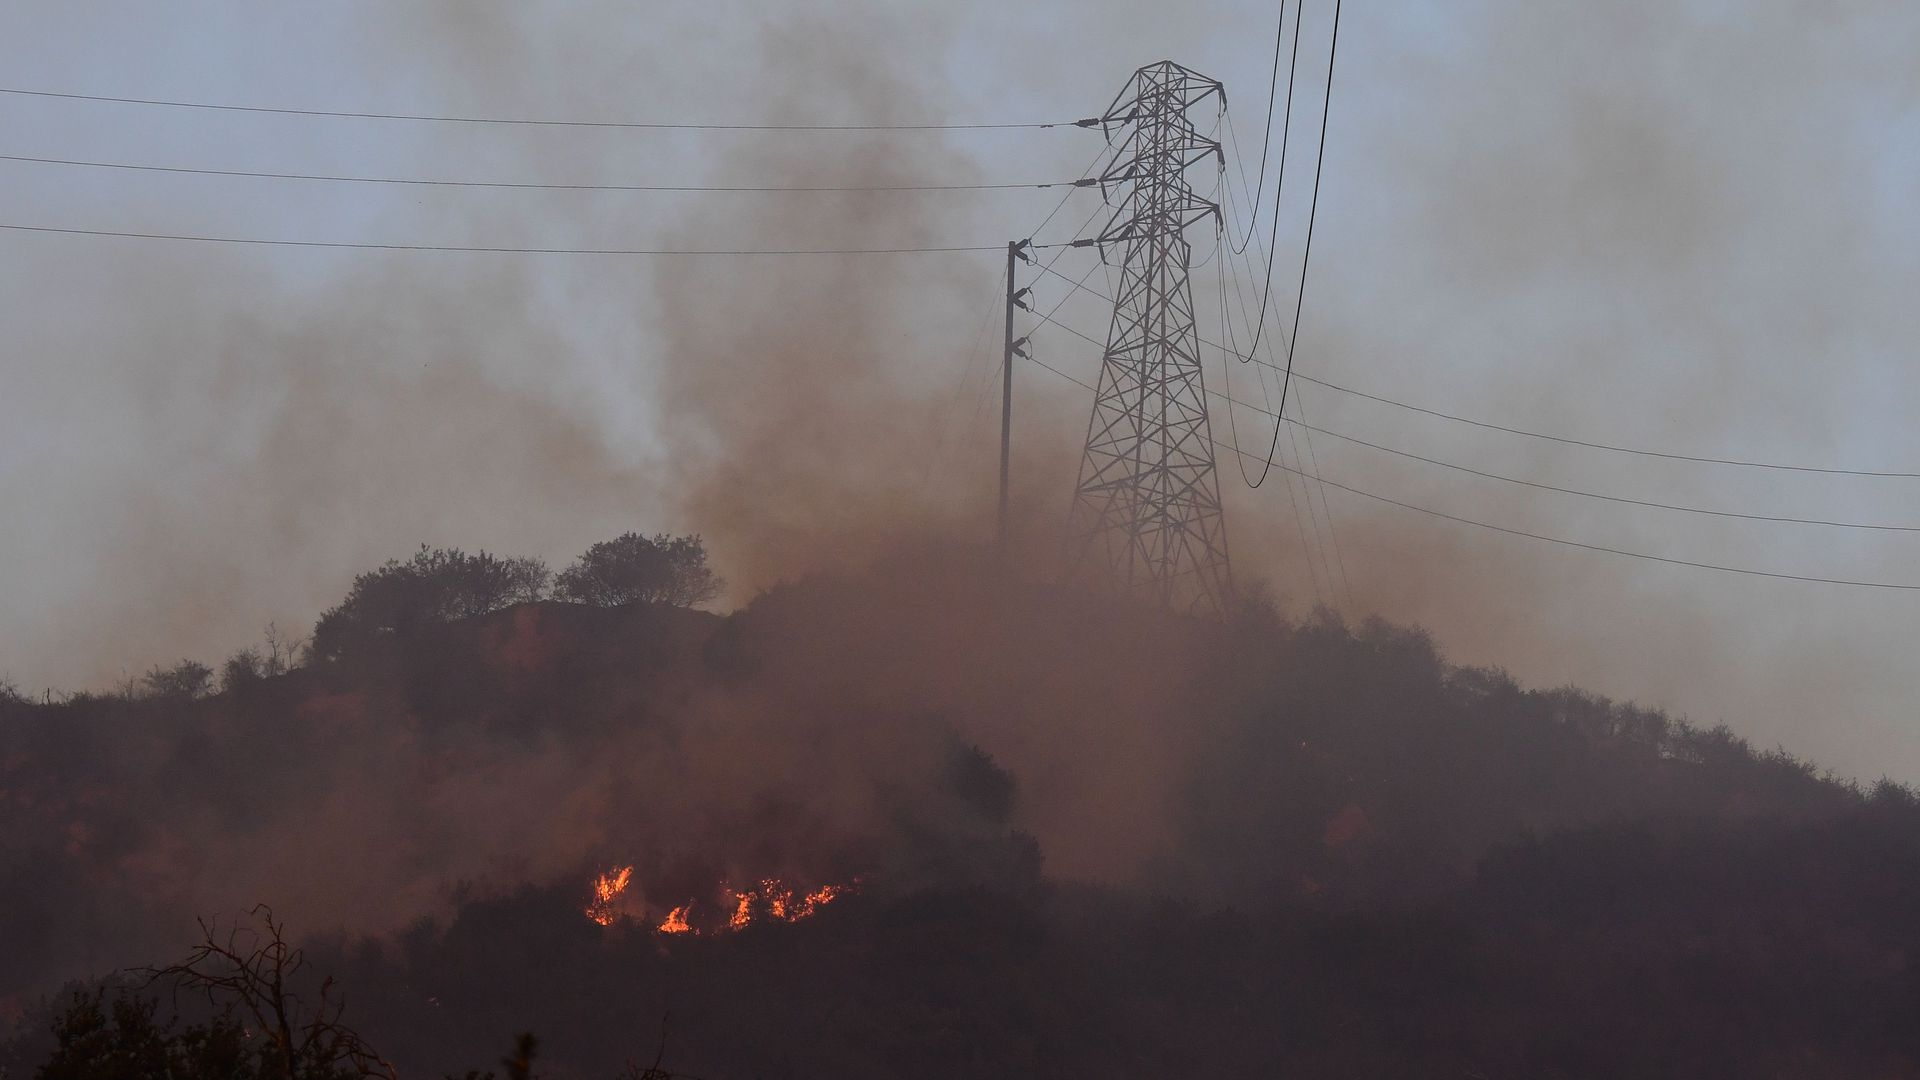 Fire burns near power lines at the Thomas Fire, December 16, 2017 in Montecito, California.